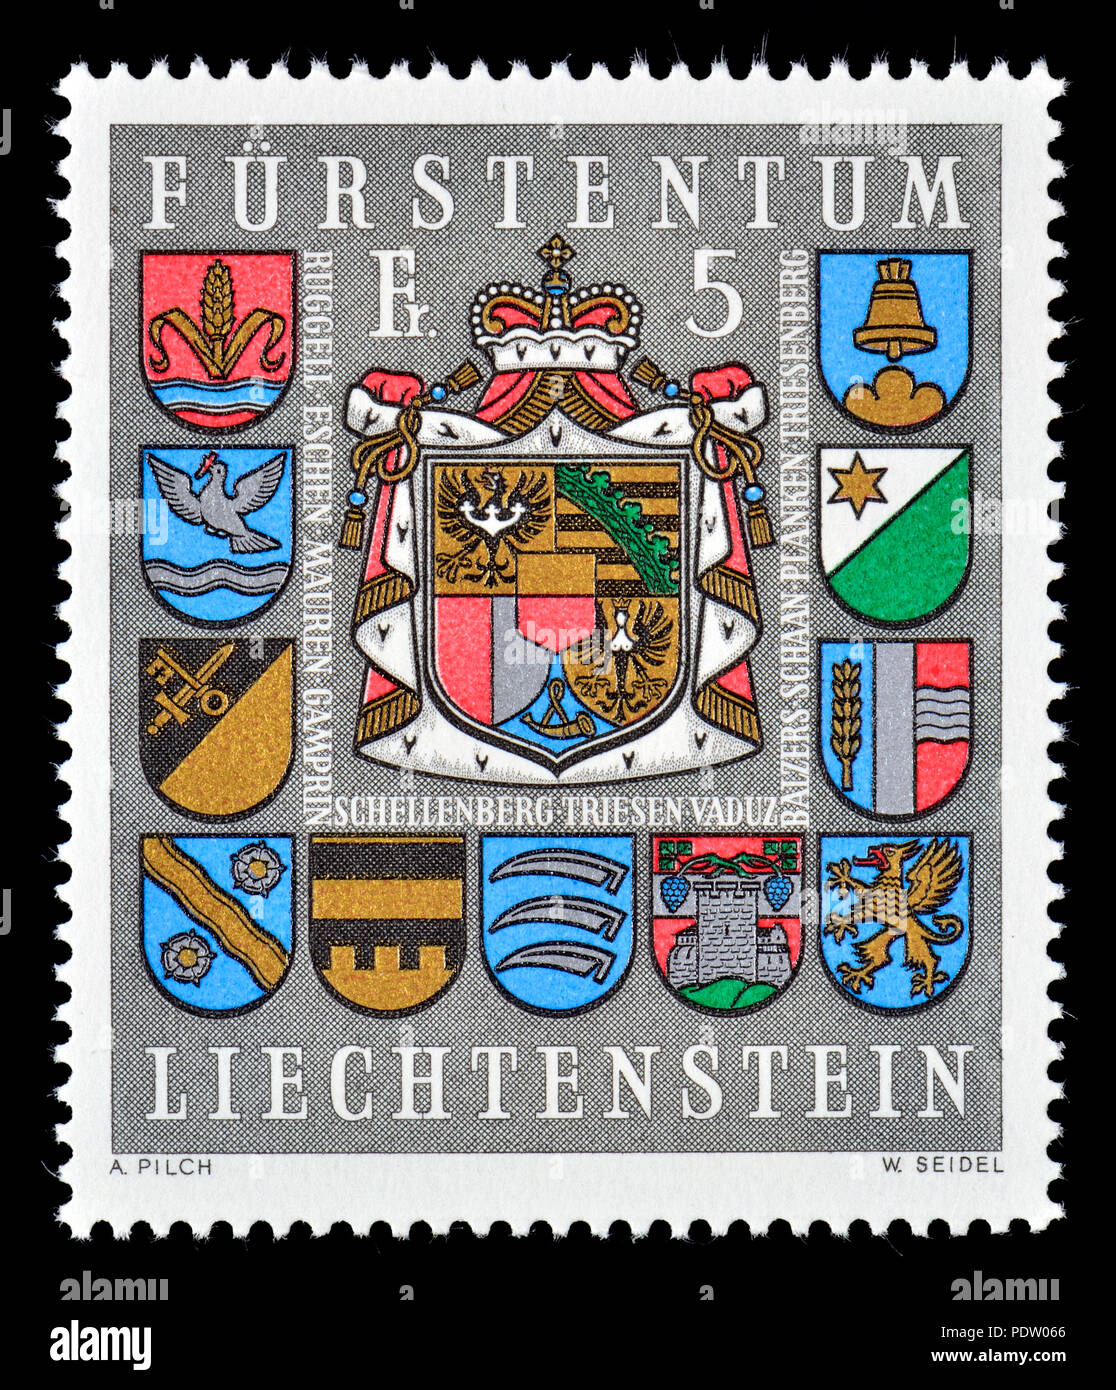 Liechtenstein postage stamp (1973) : Coats of arms of Liechtenstein and municipalities - Stock Image